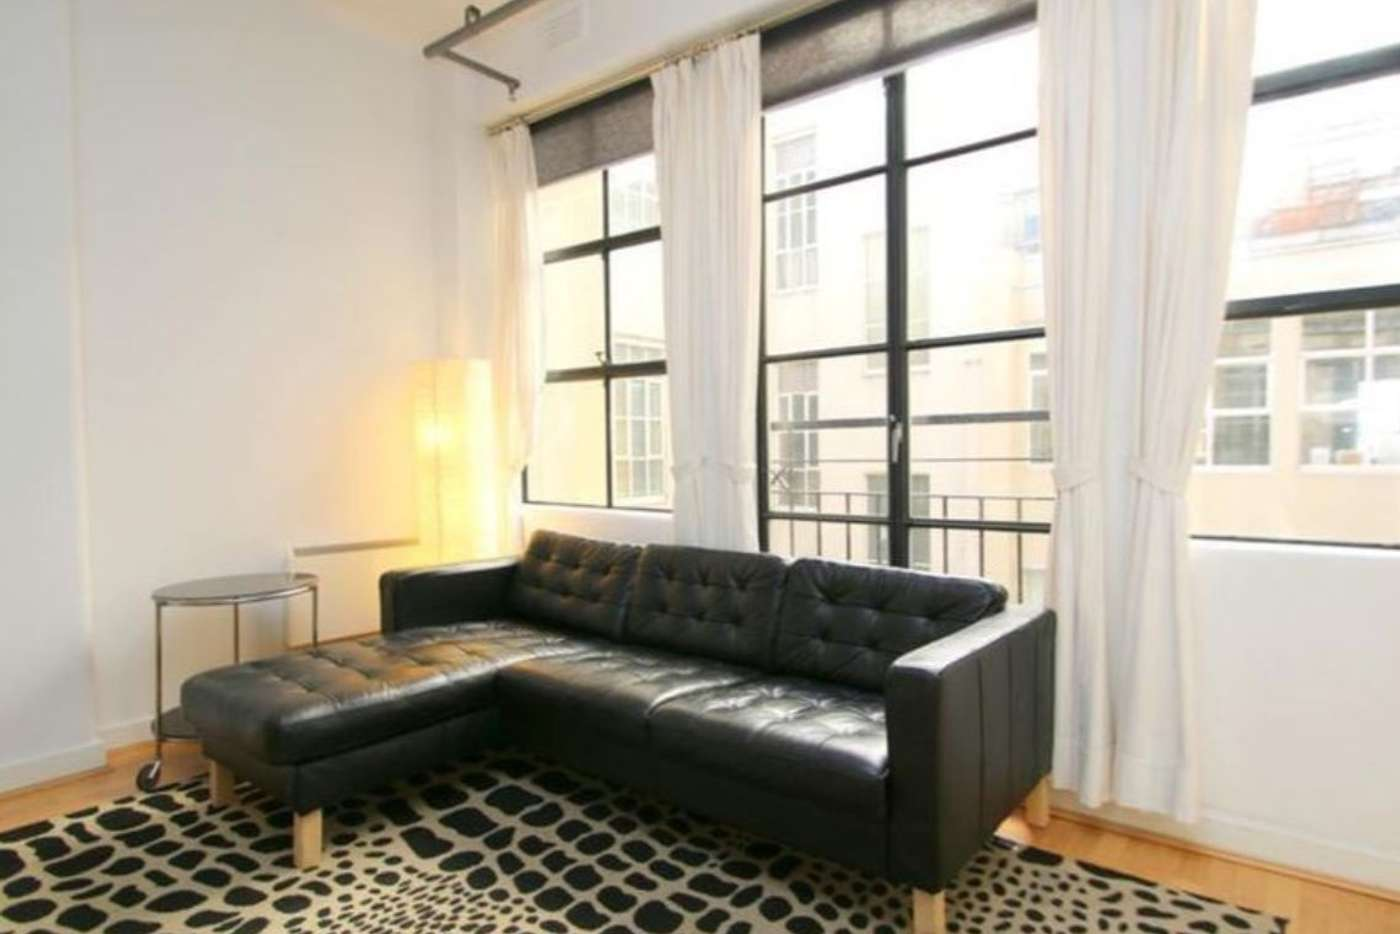 Sixth view of Homely apartment listing, 921/422 Collins Street, Melbourne VIC 3000